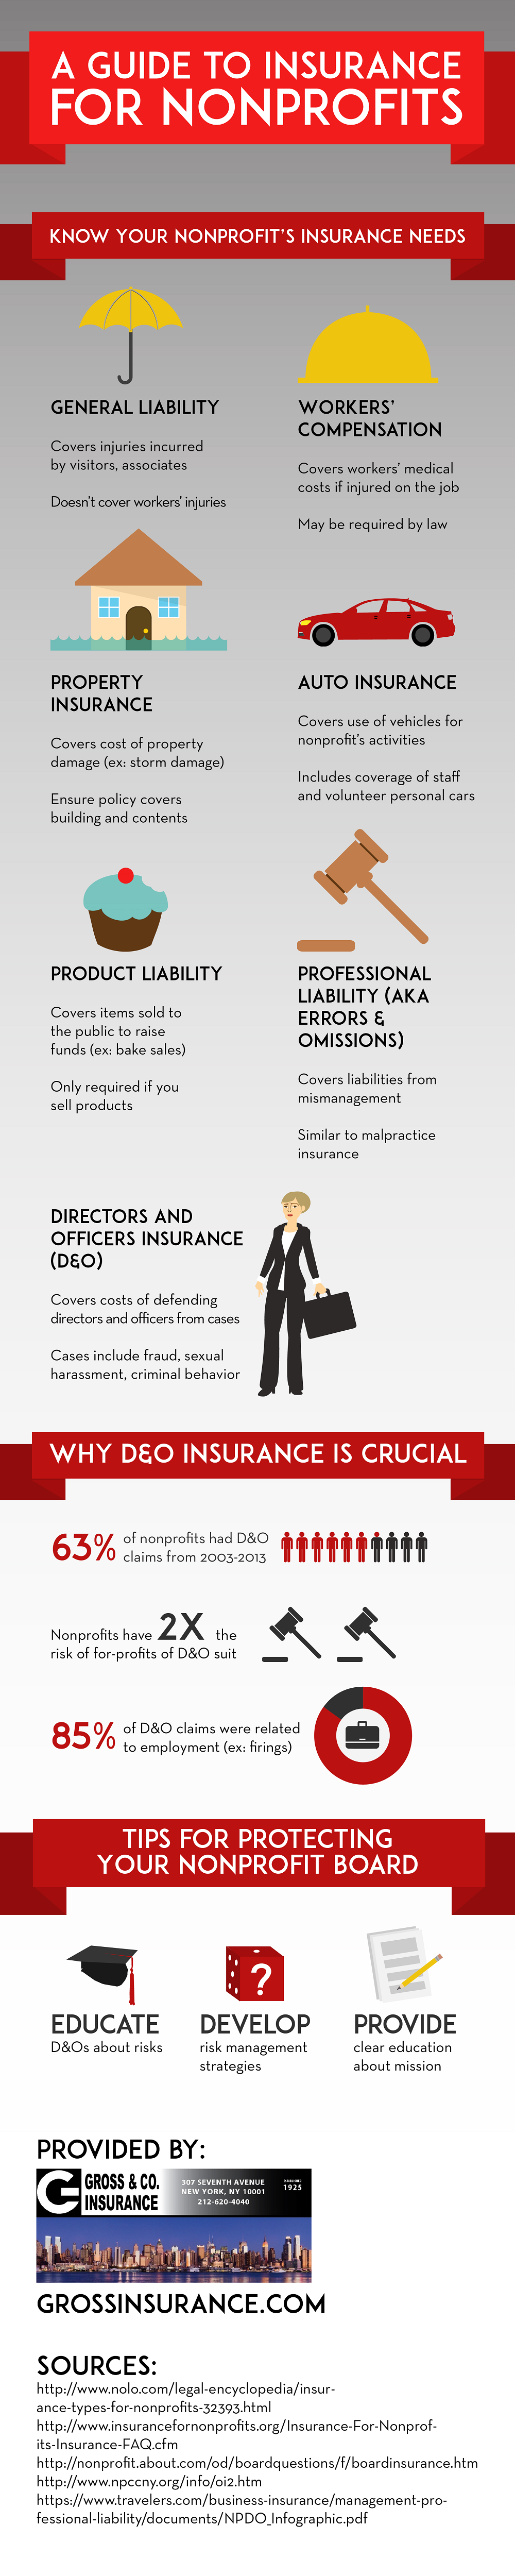 A Guide To Insurance For Nonprofits Infographic Umbrella Insurance Life Insurance Agent General Liability